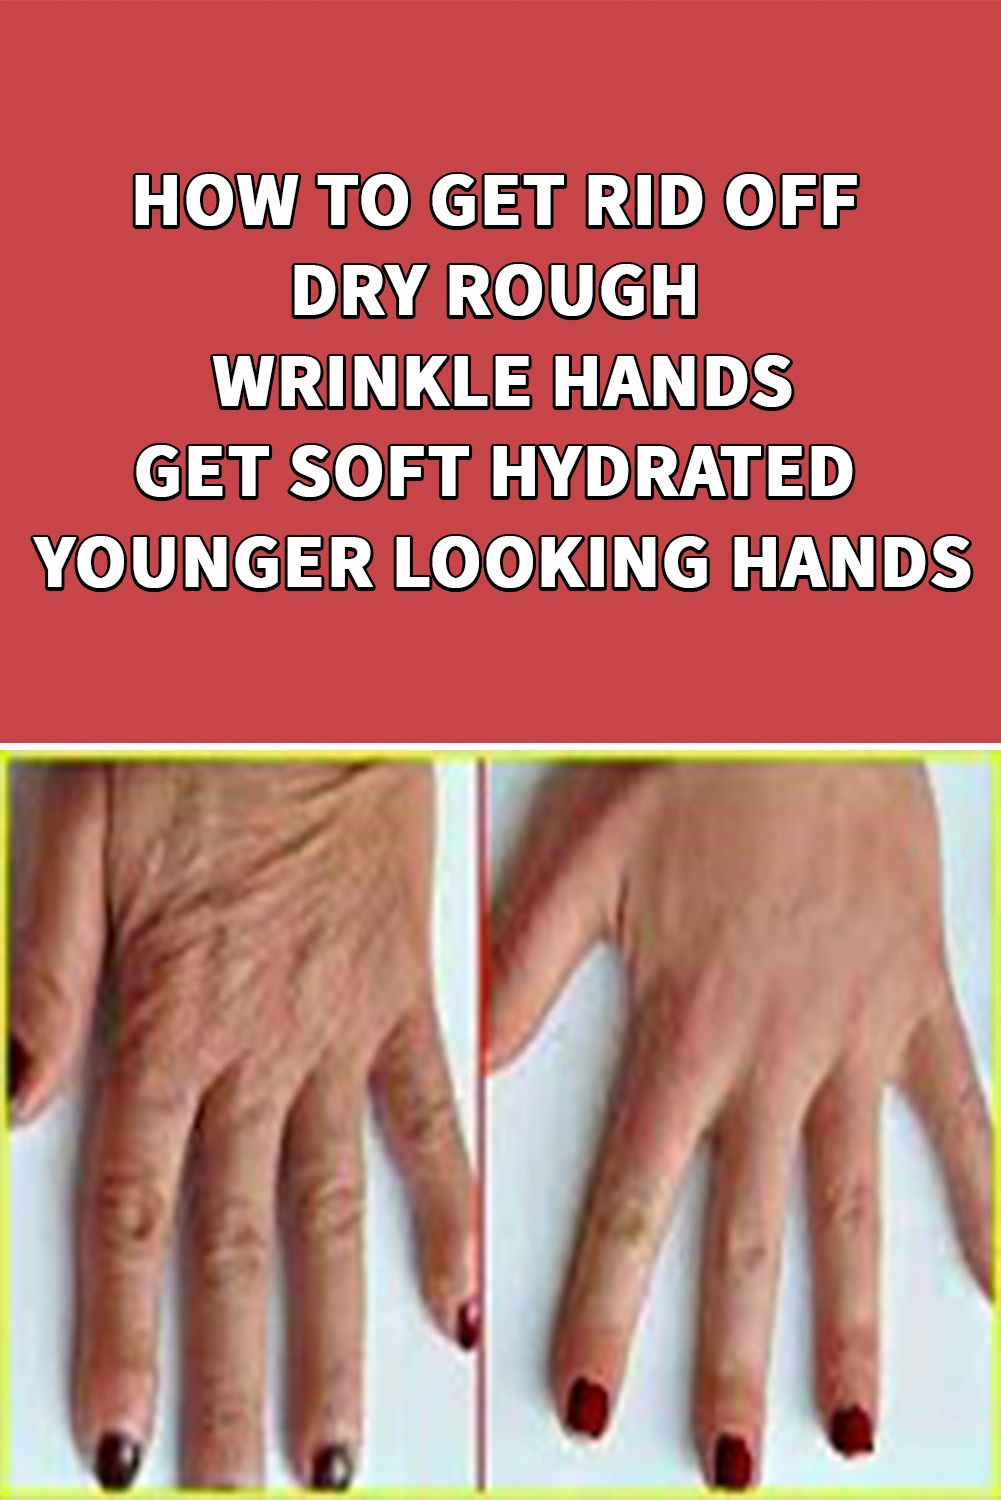 How To Get Rid Of Wrinkles On Fingers Naturally